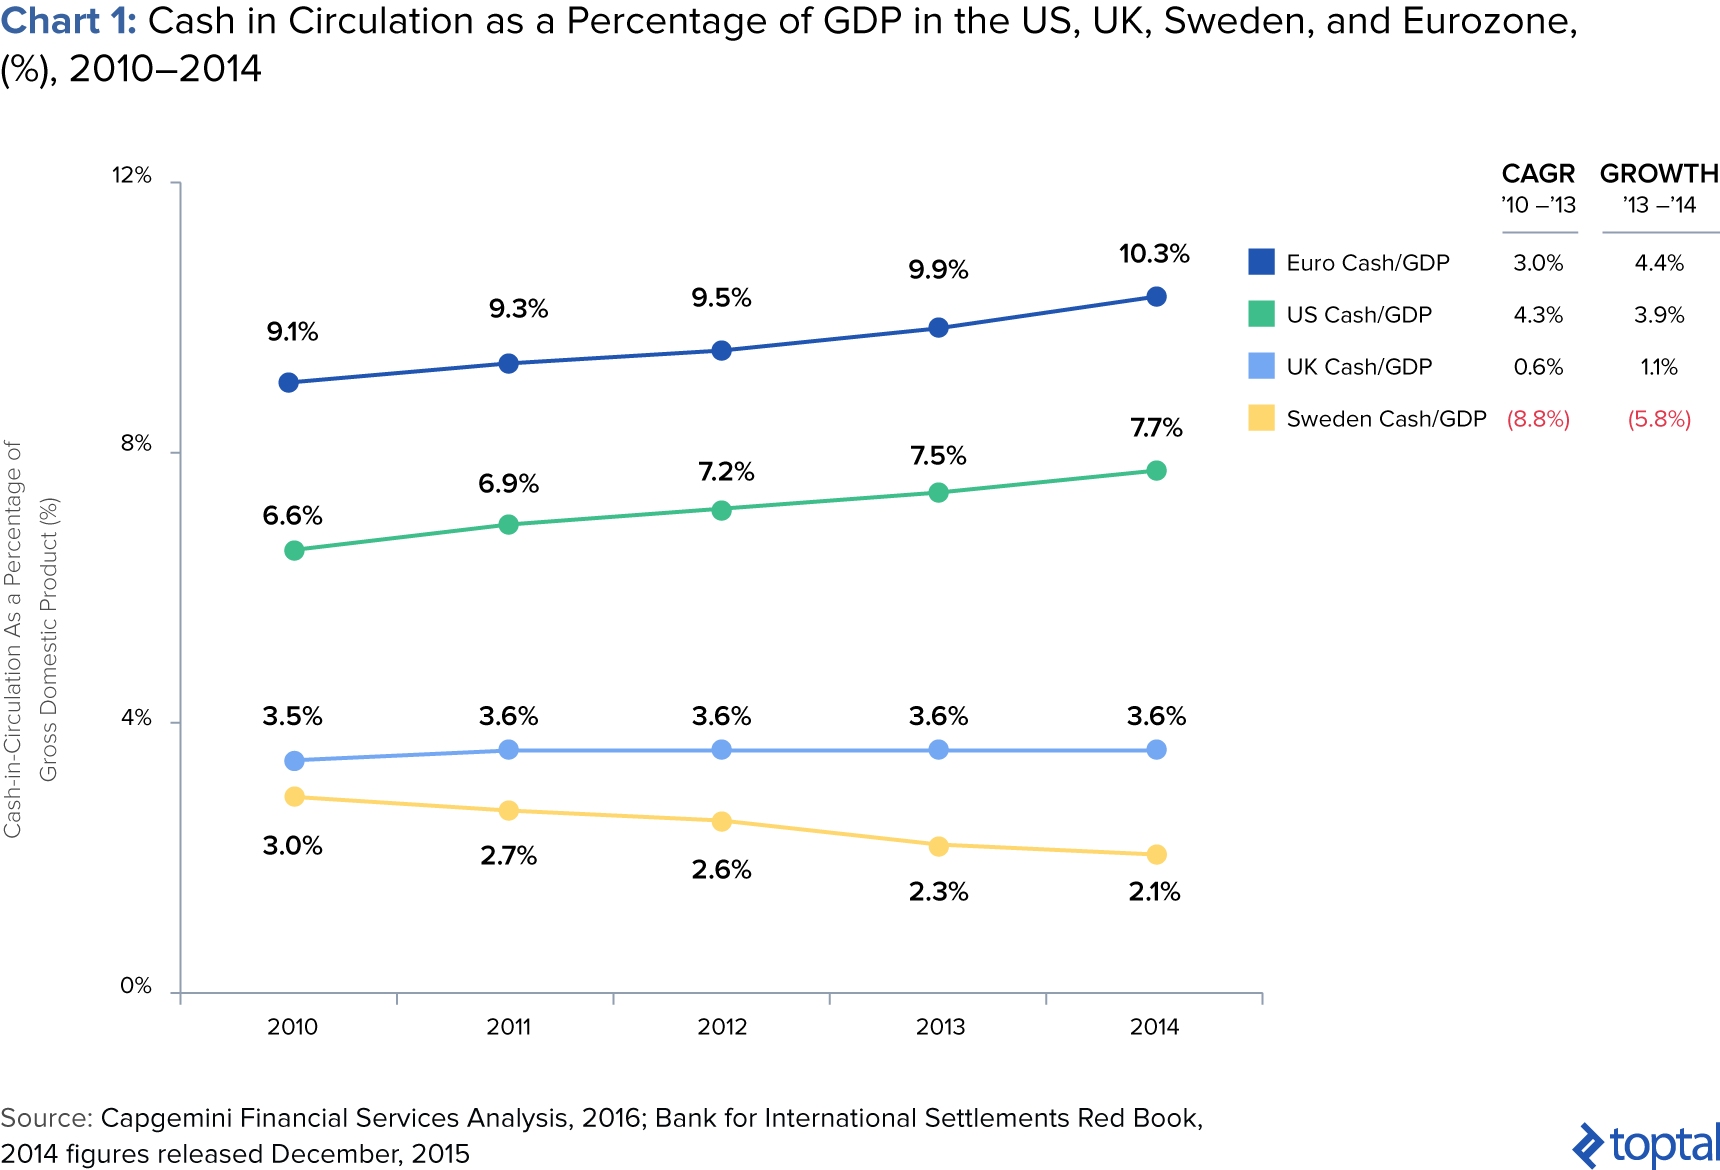 Cash in Circulation as a Percentage of GDP in the US, UK, Sweden, and Eurozone